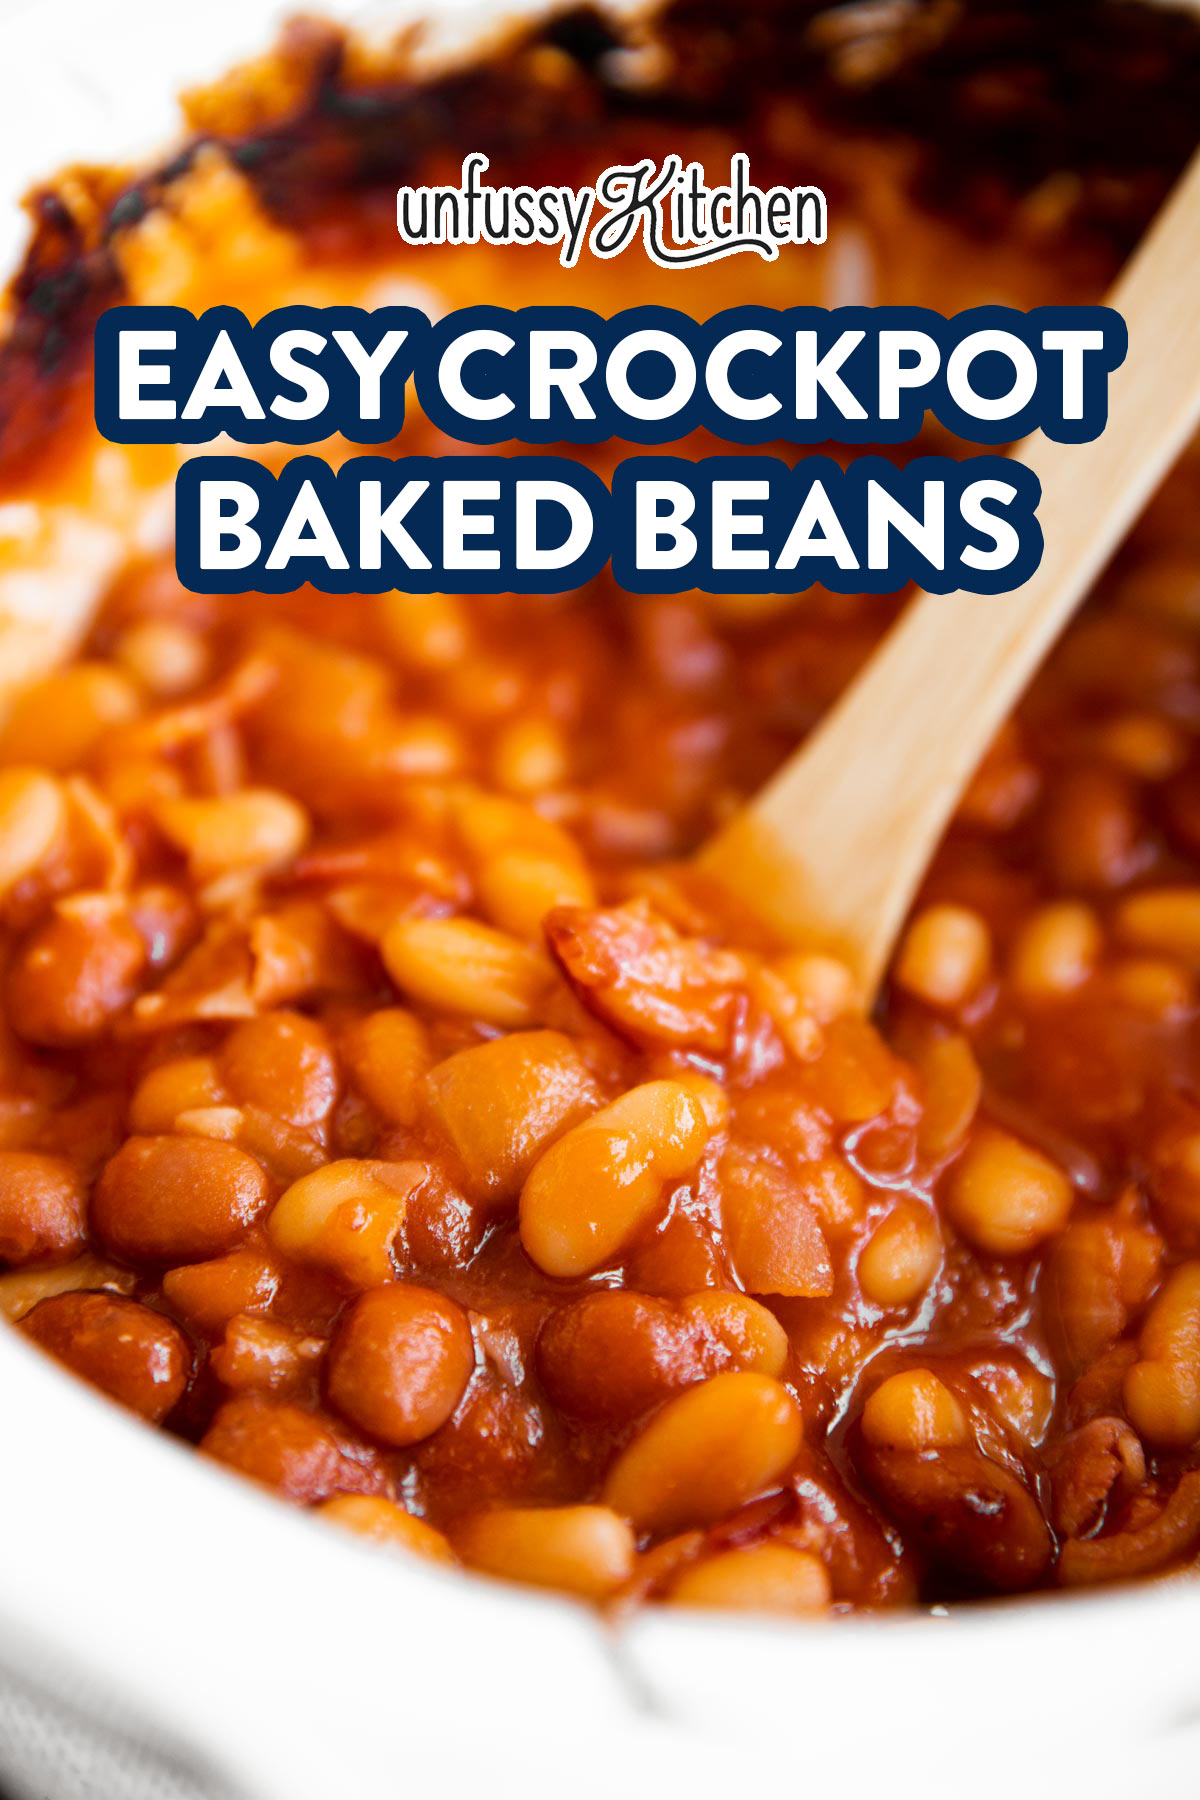 close up of crockpot baked beans with text overlay